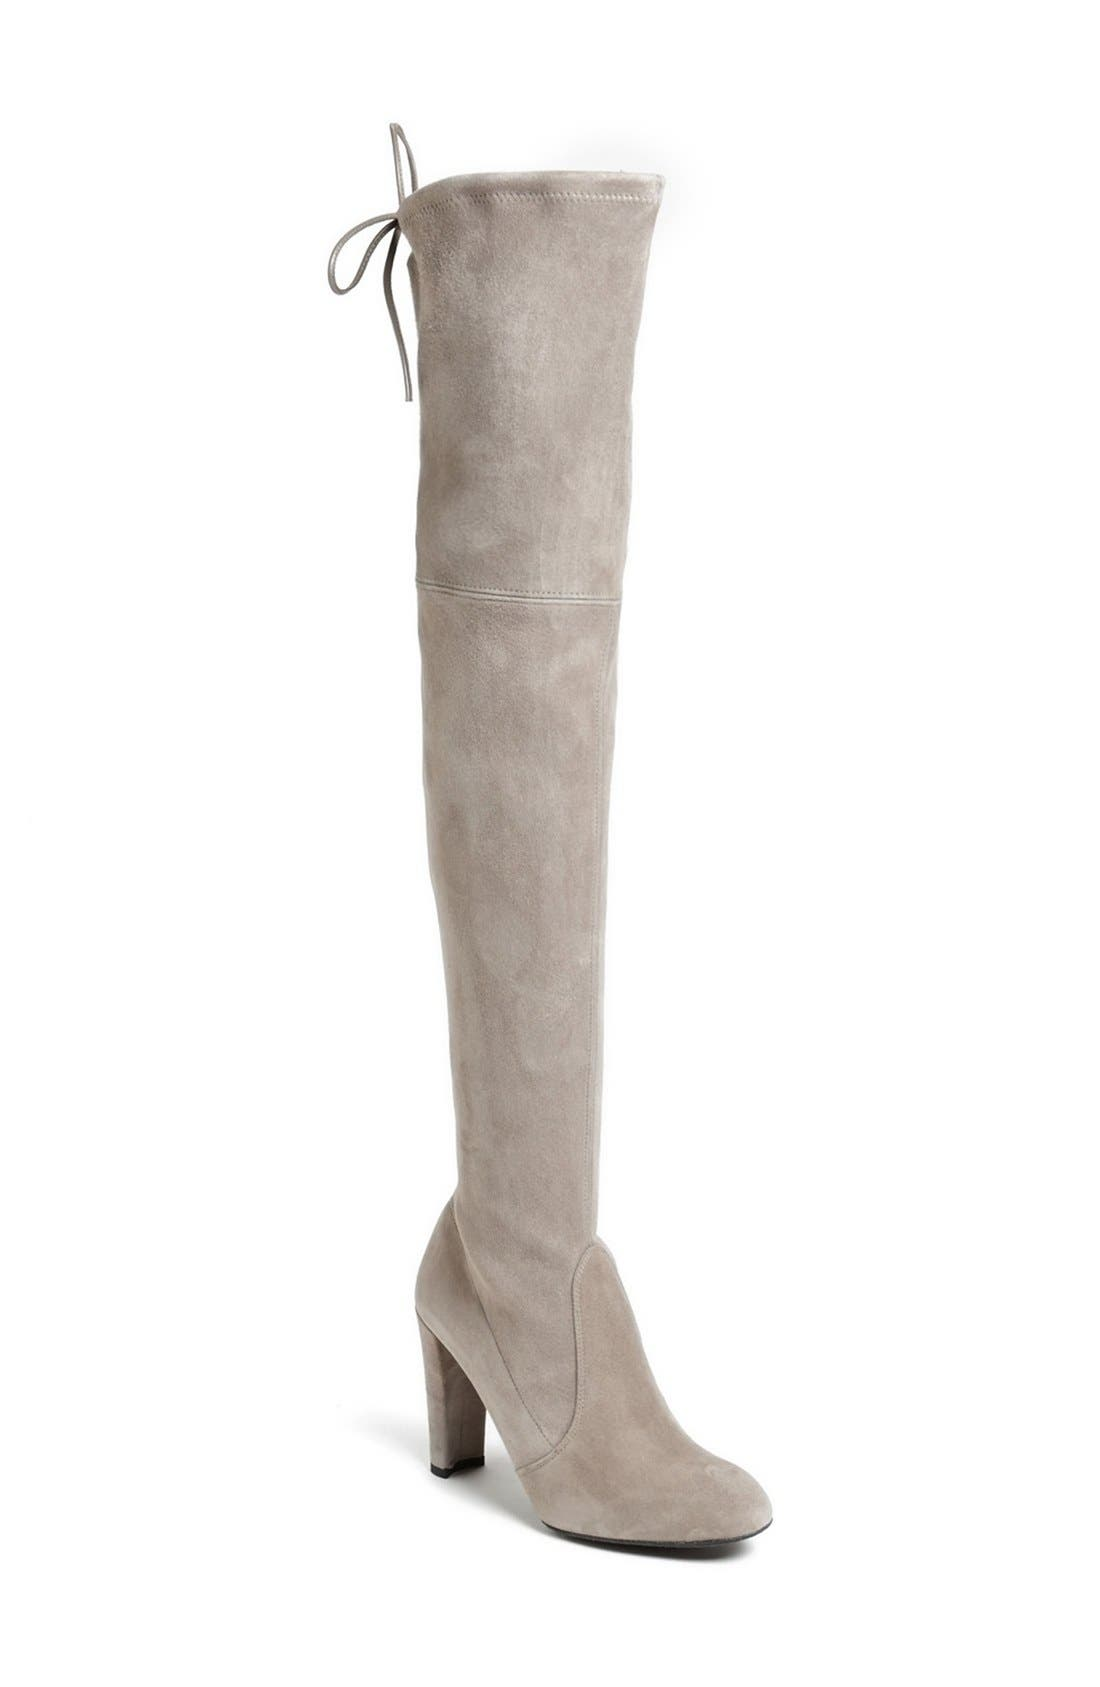 'Highland' Over the Knee Boot,                         Main,                         color, Topo Suede